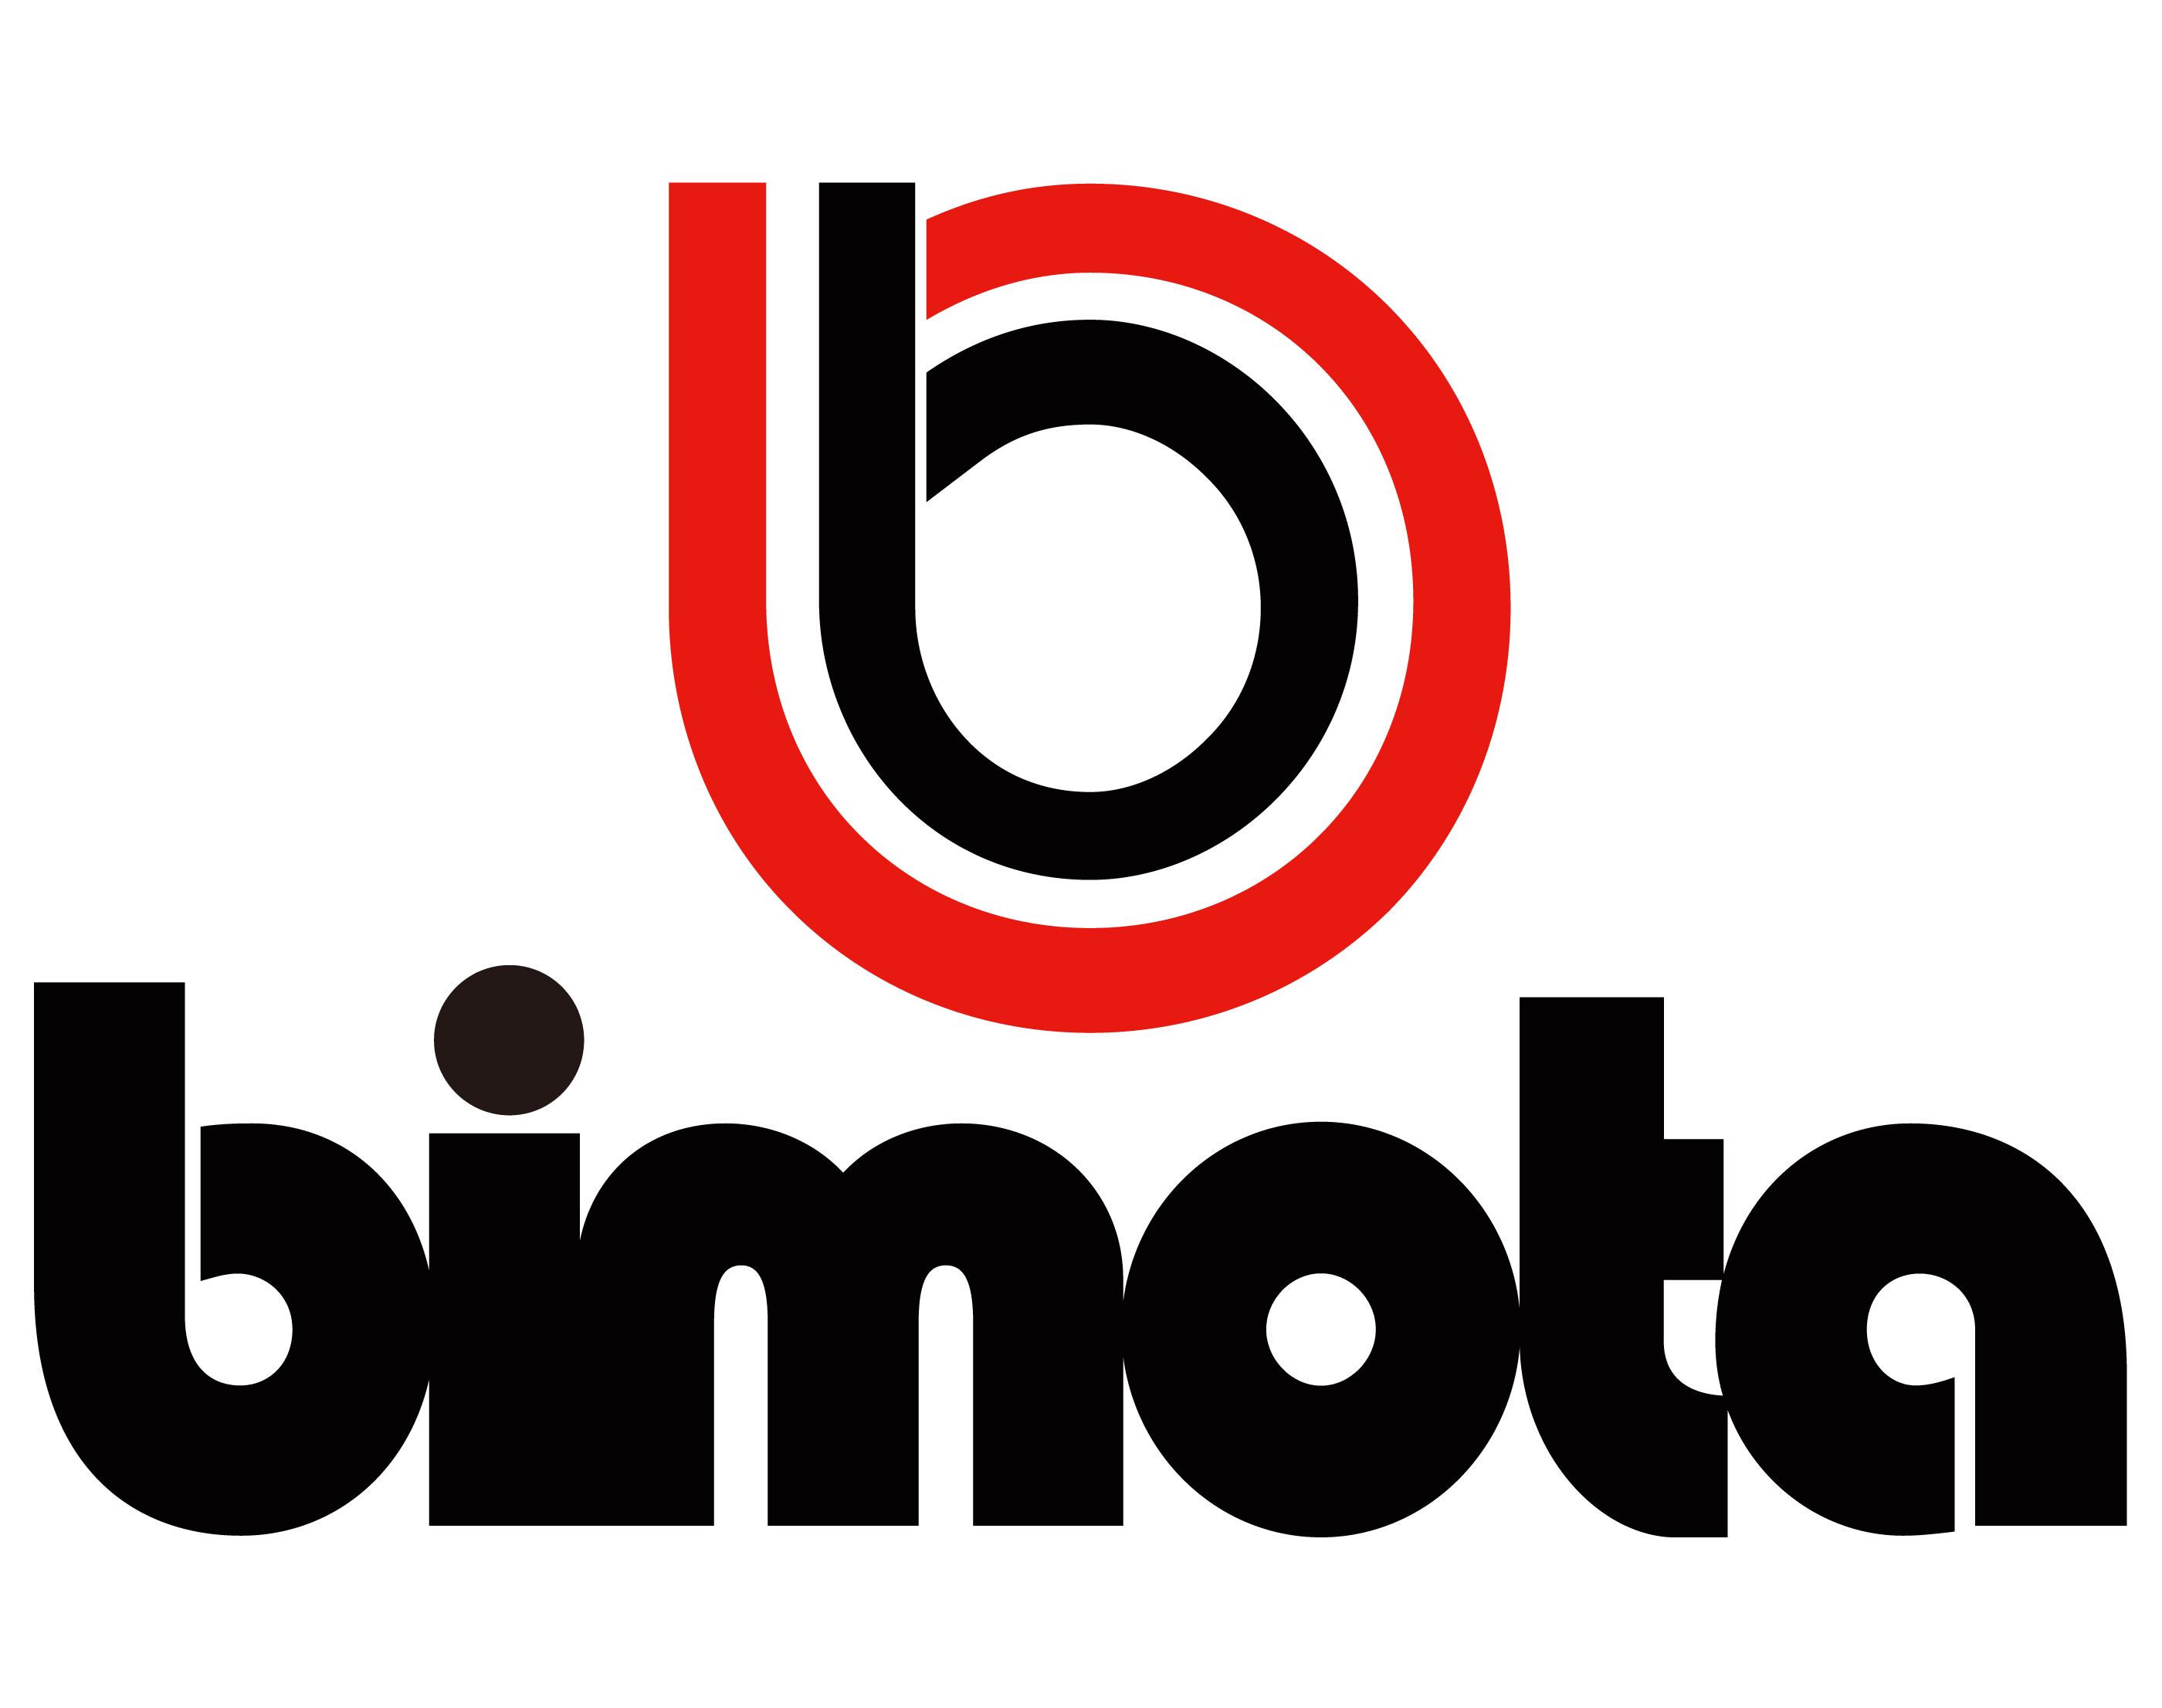 bimota logo motorcycle brands rh motorcycle logos com motorcycle logos with wings motorcycle logos clip art